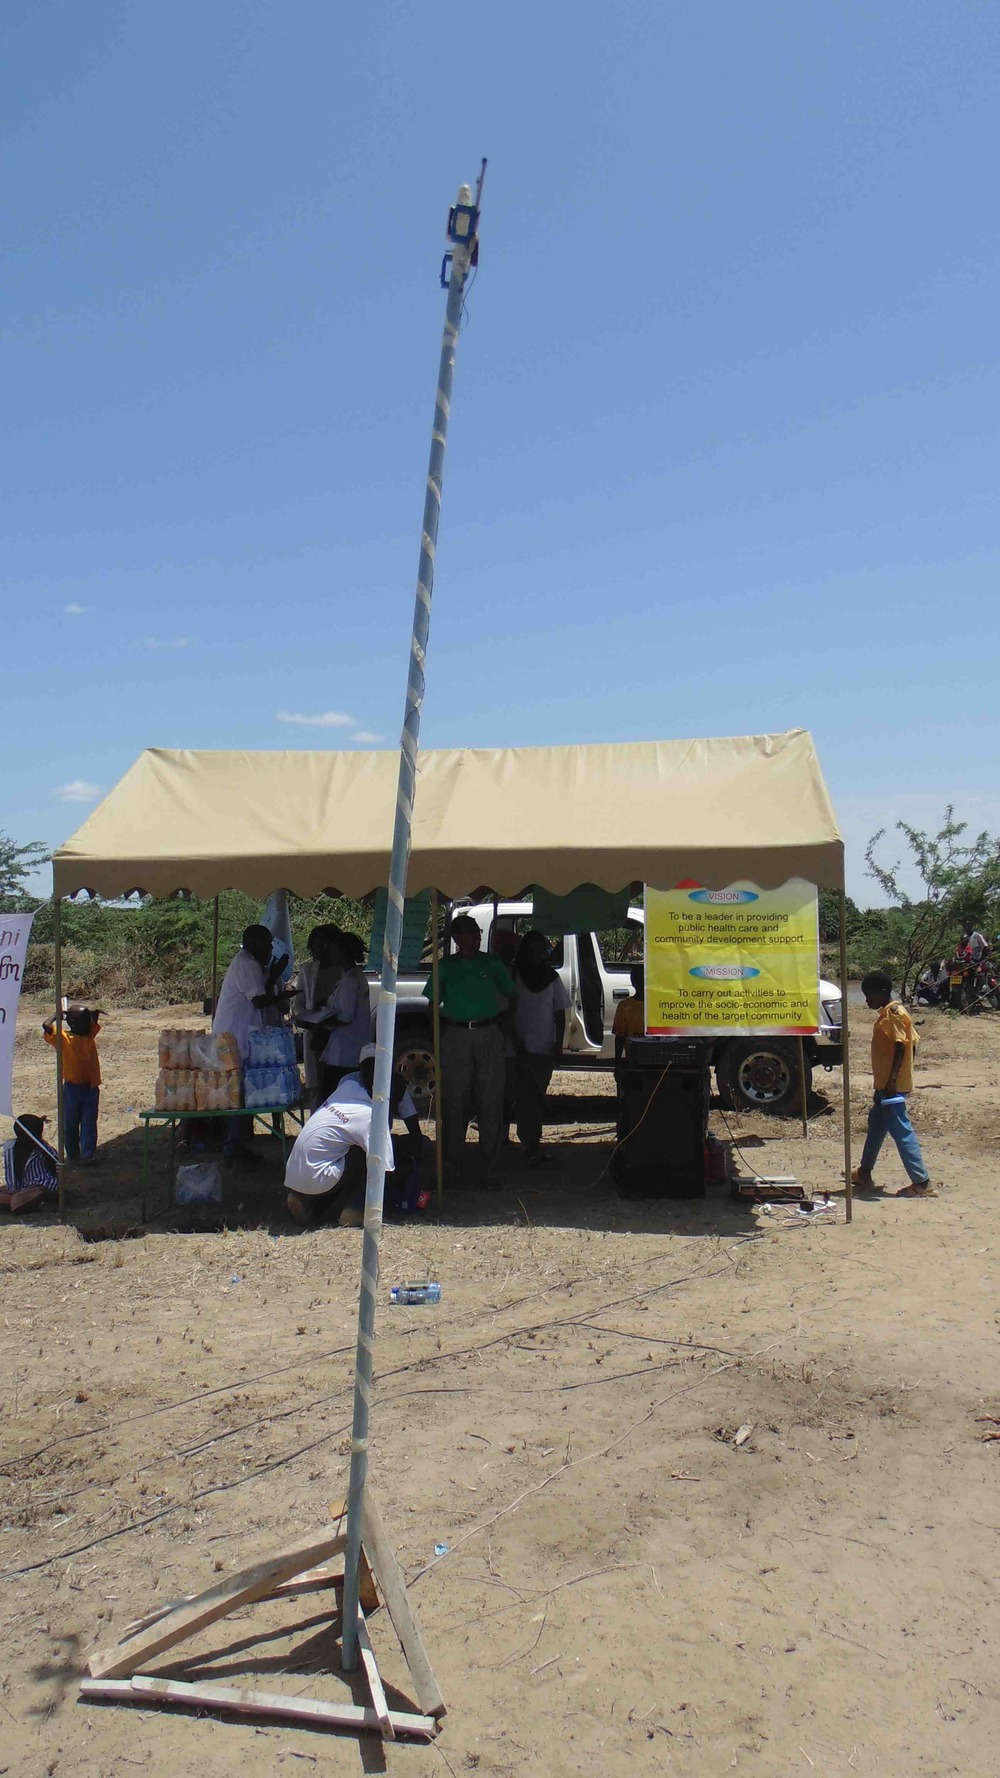 Improvised broadcasting to prove the value of radio to promote peace, health and social development in Tana River